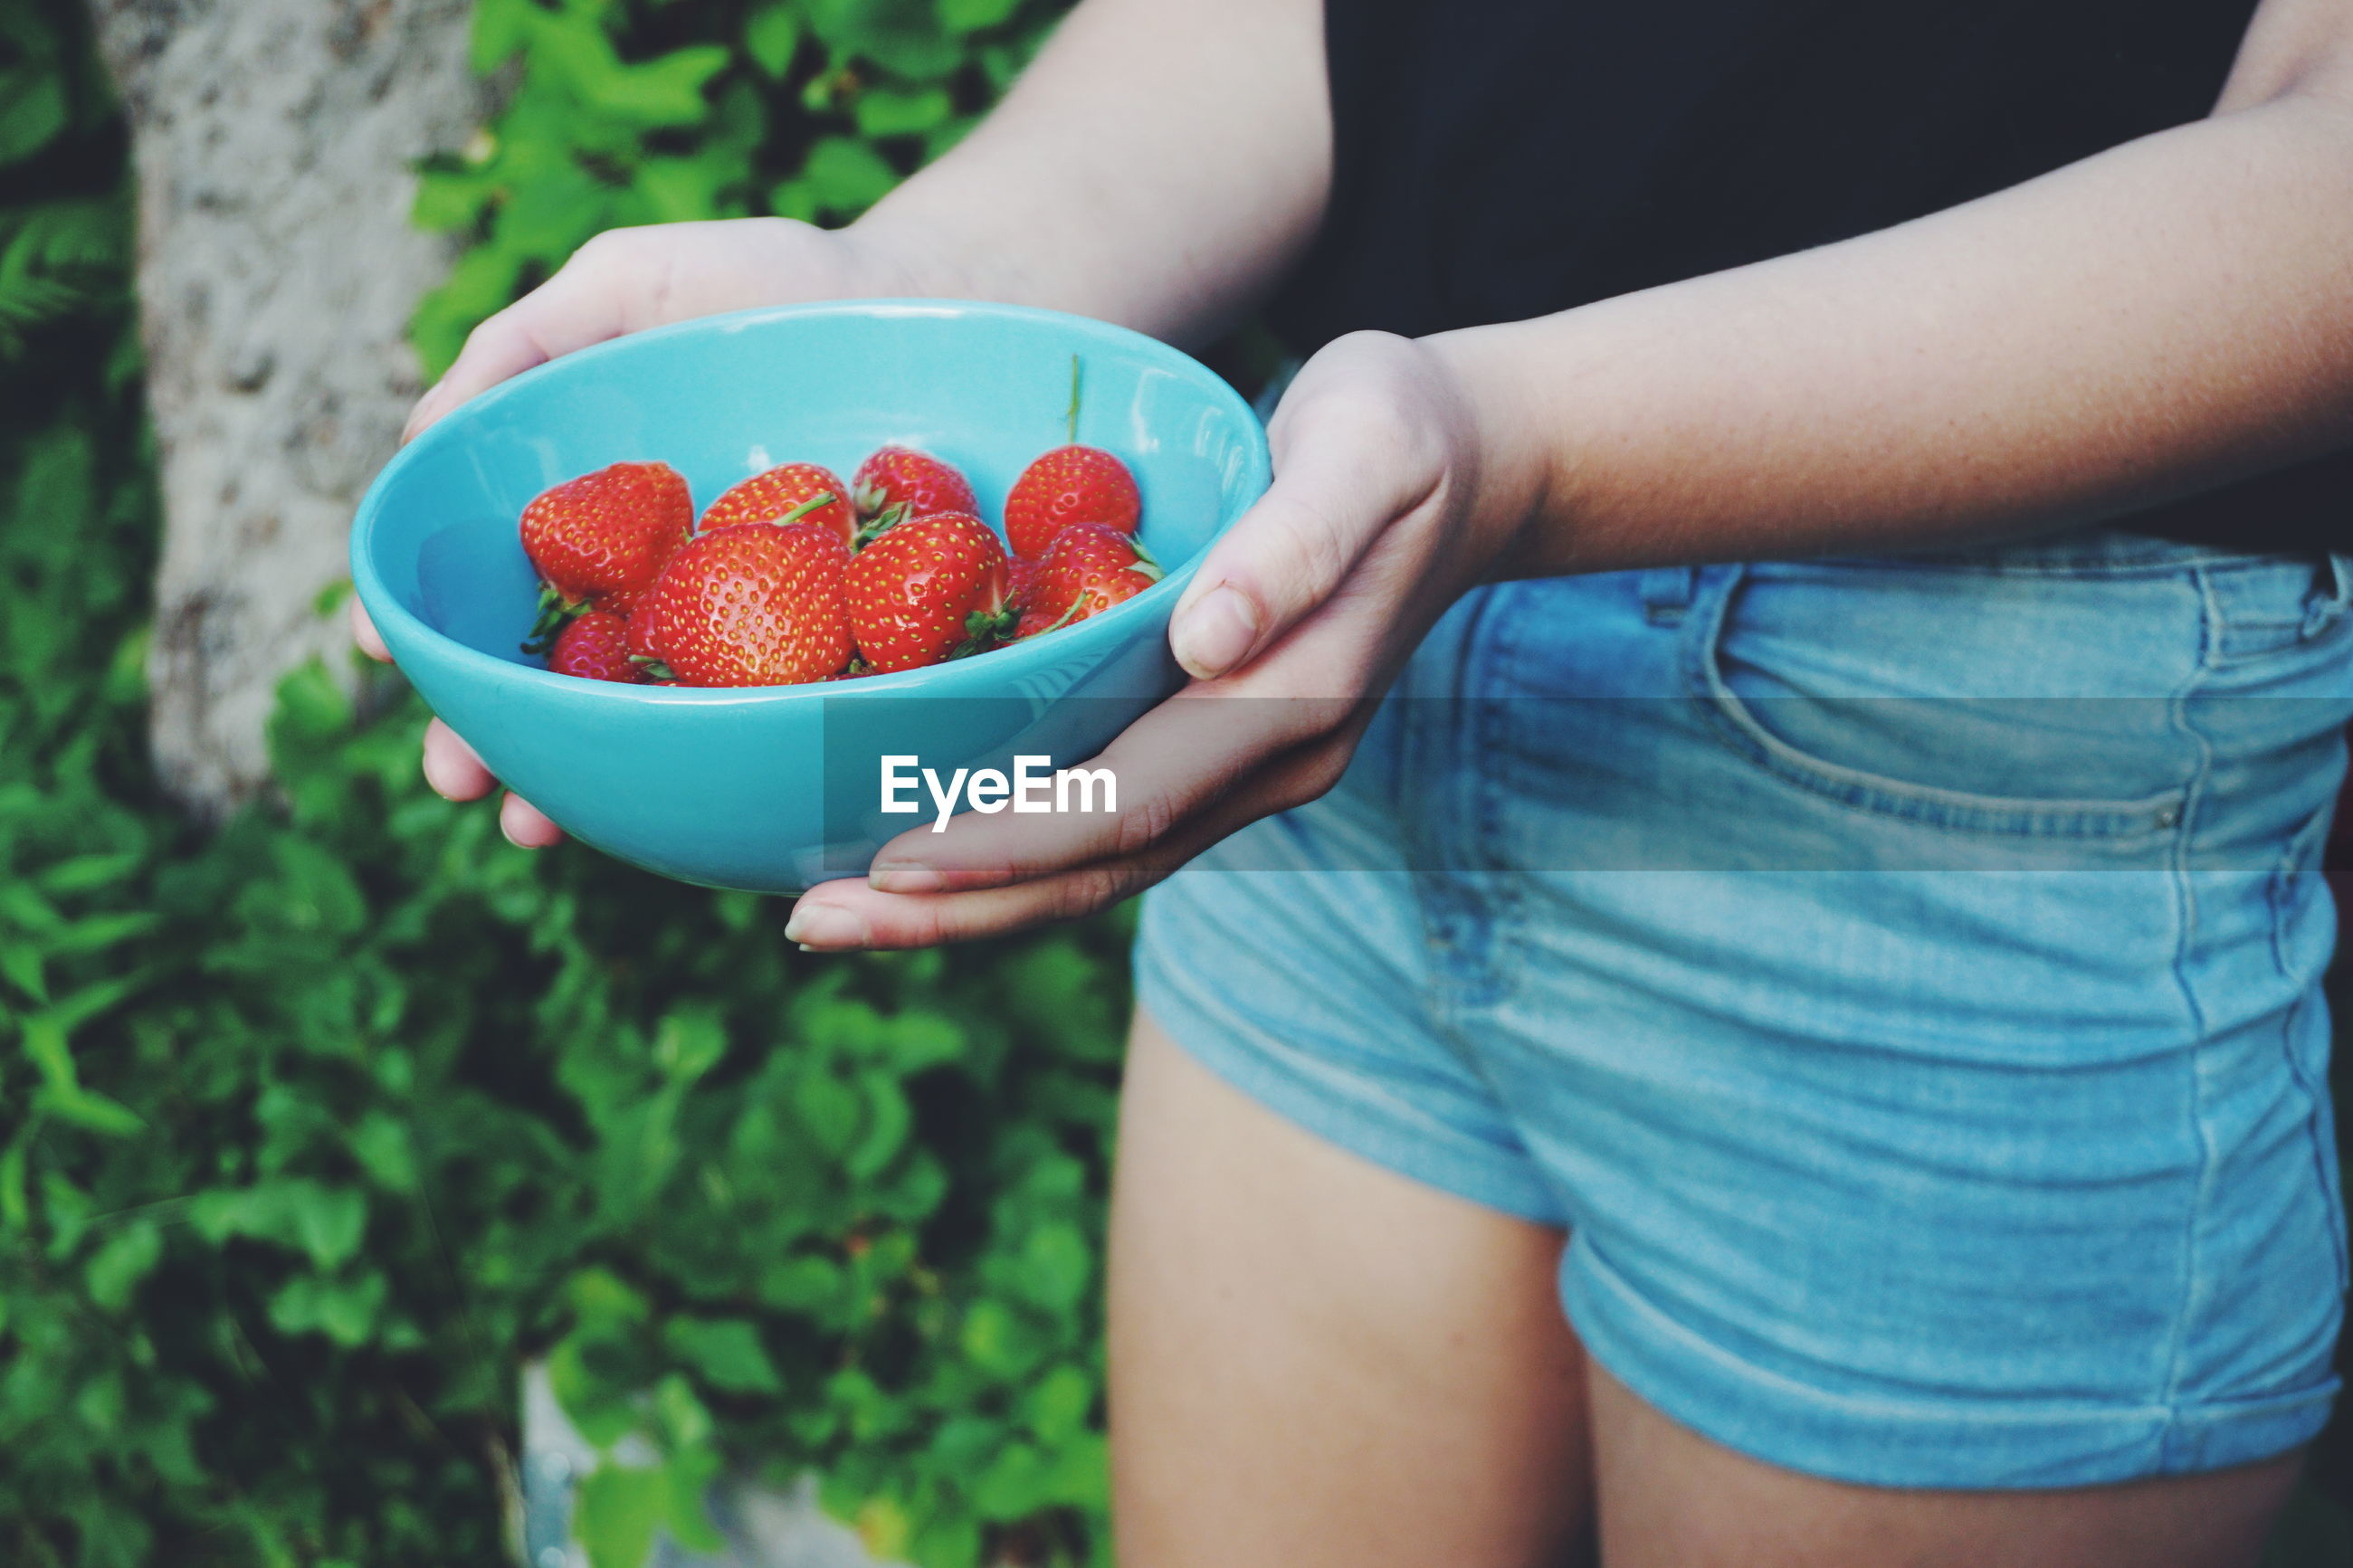 Midsection of woman holding strawberries in bowl